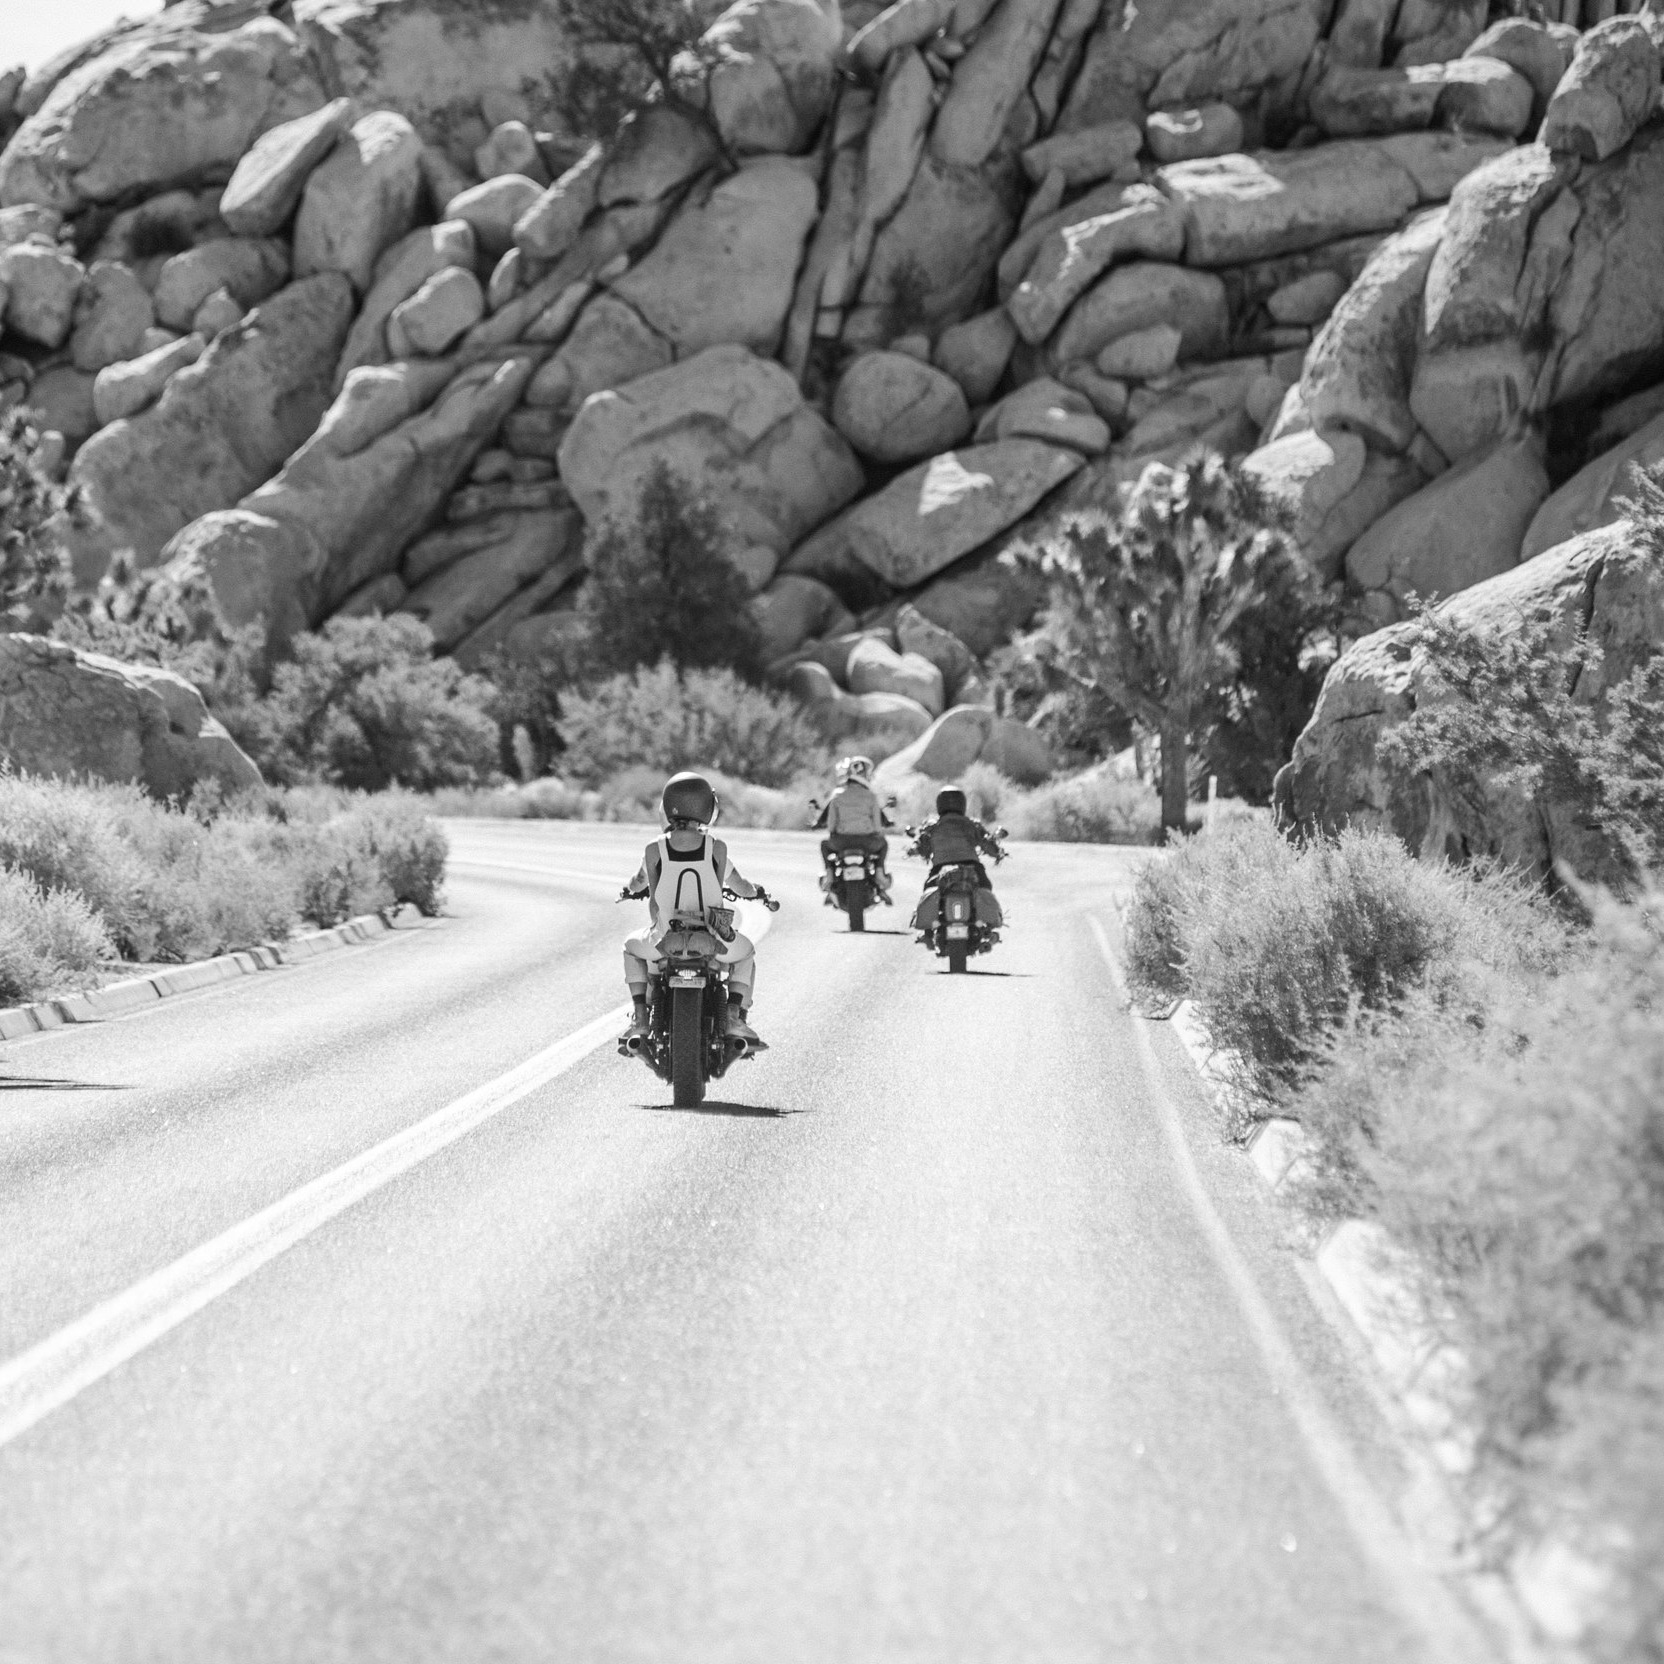 Riding in a Group - Know the proper etiquette